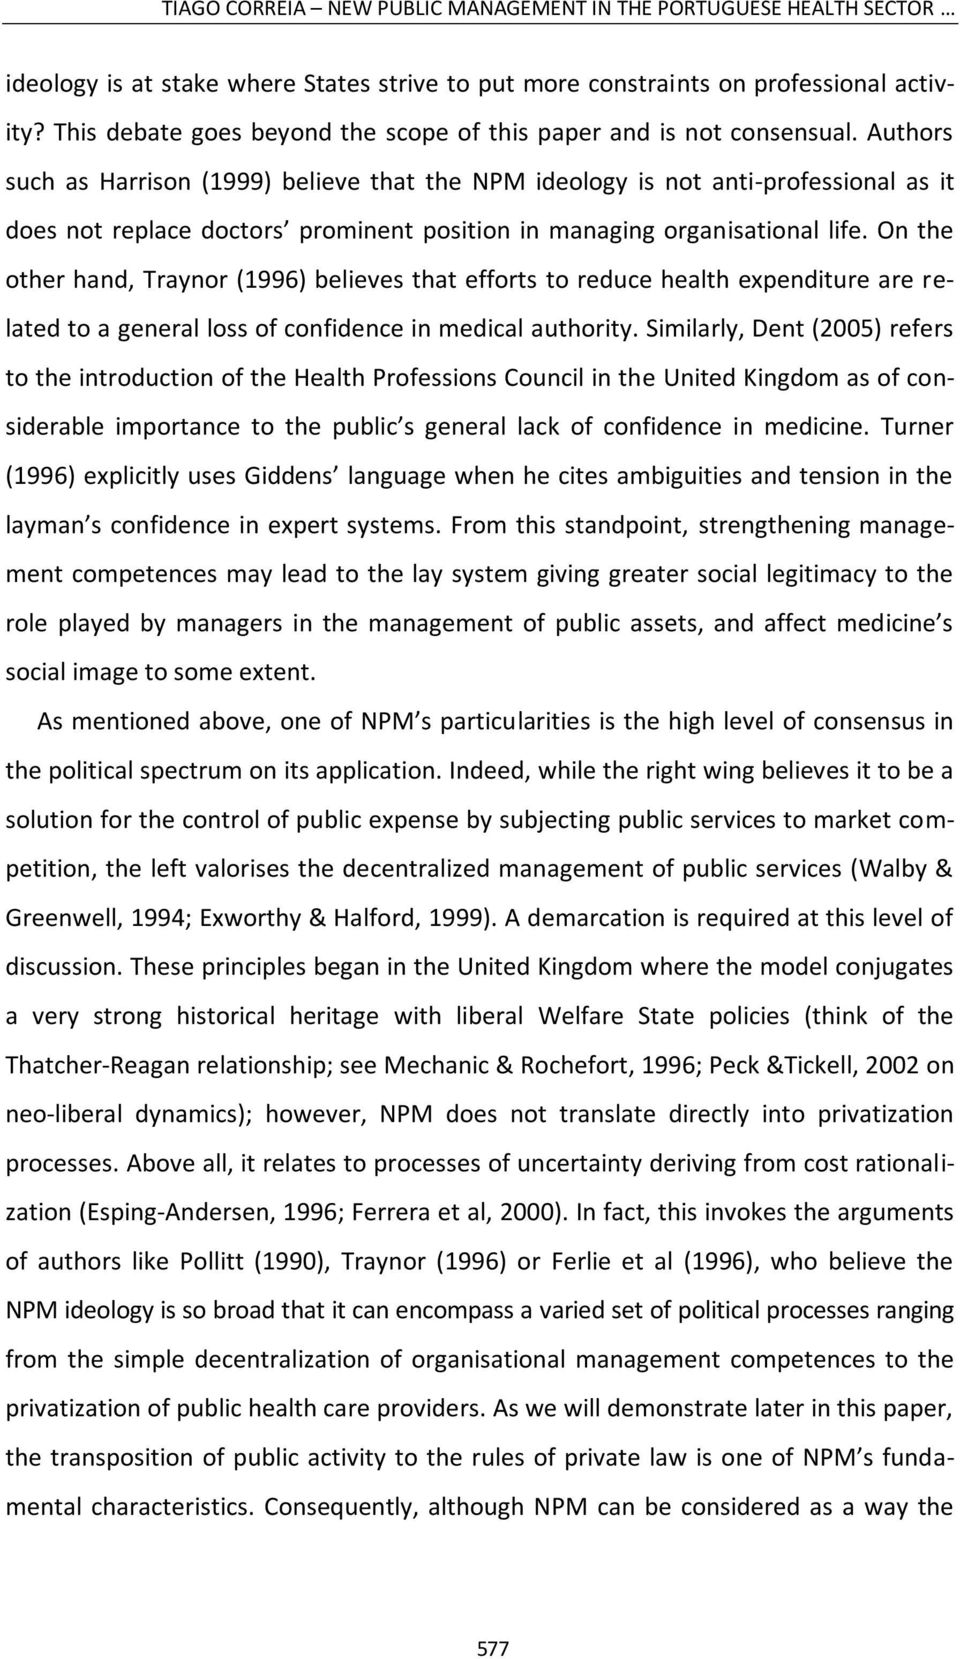 Authors such as Harrison (1999) believe that the NPM ideology is not anti-professional as it does not replace doctors prominent position in managing organisational life.